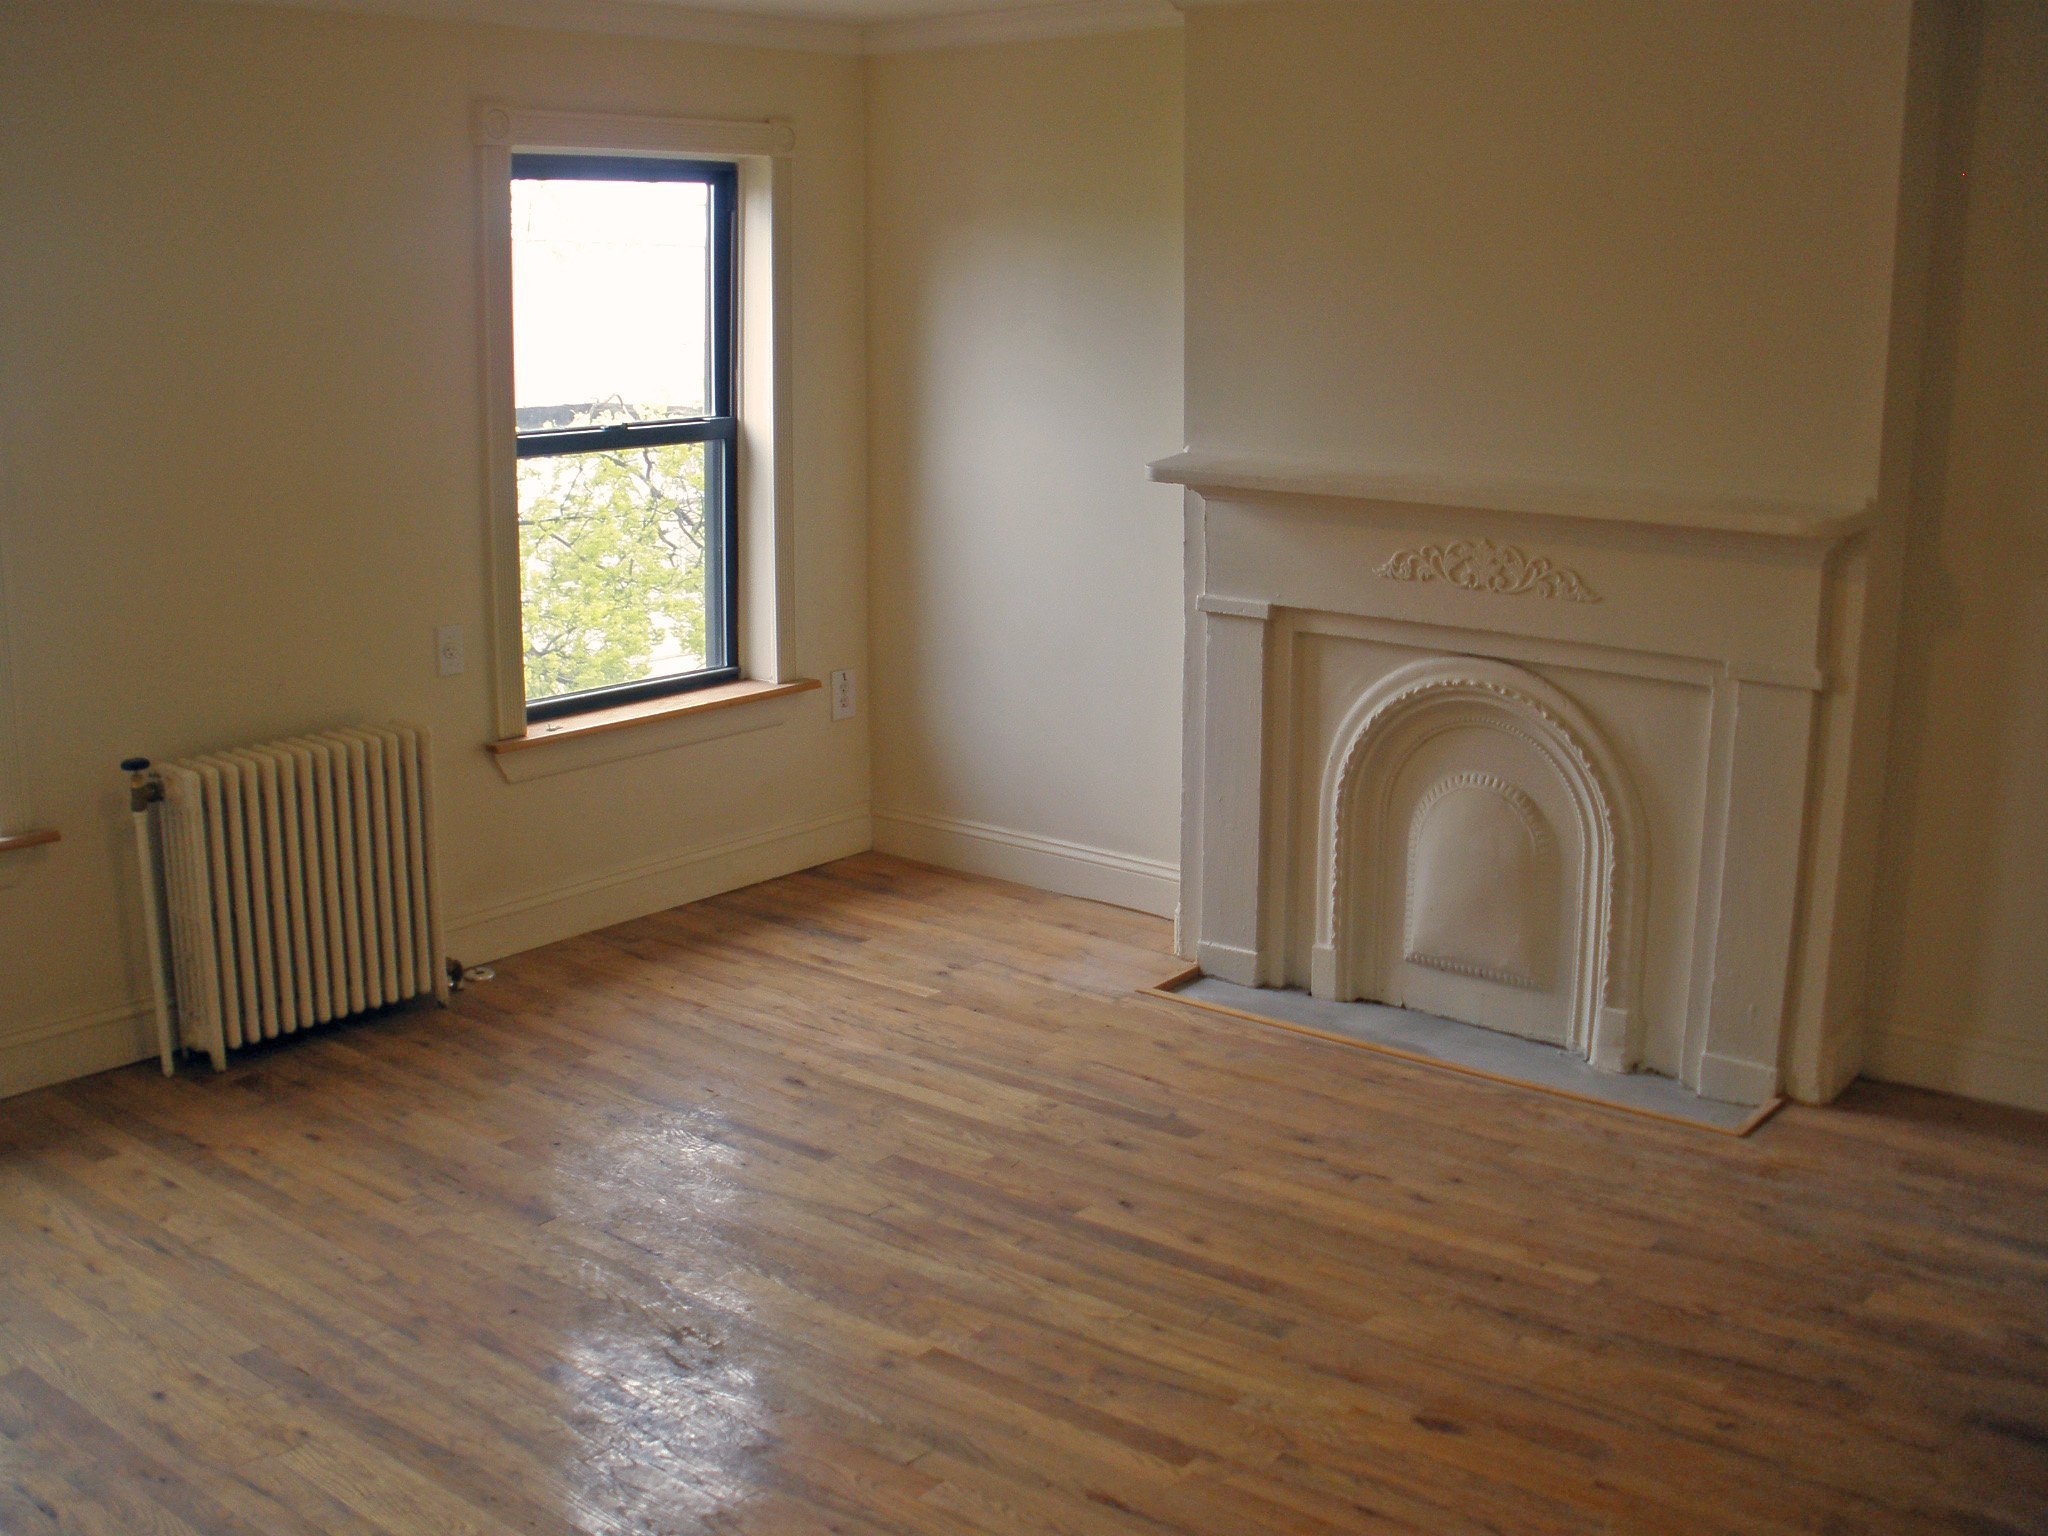 Apartments For Rent 2 Bedroom | 2 Bedroom Bed Stuy Apartment For Rent Brooklyn Crg3091